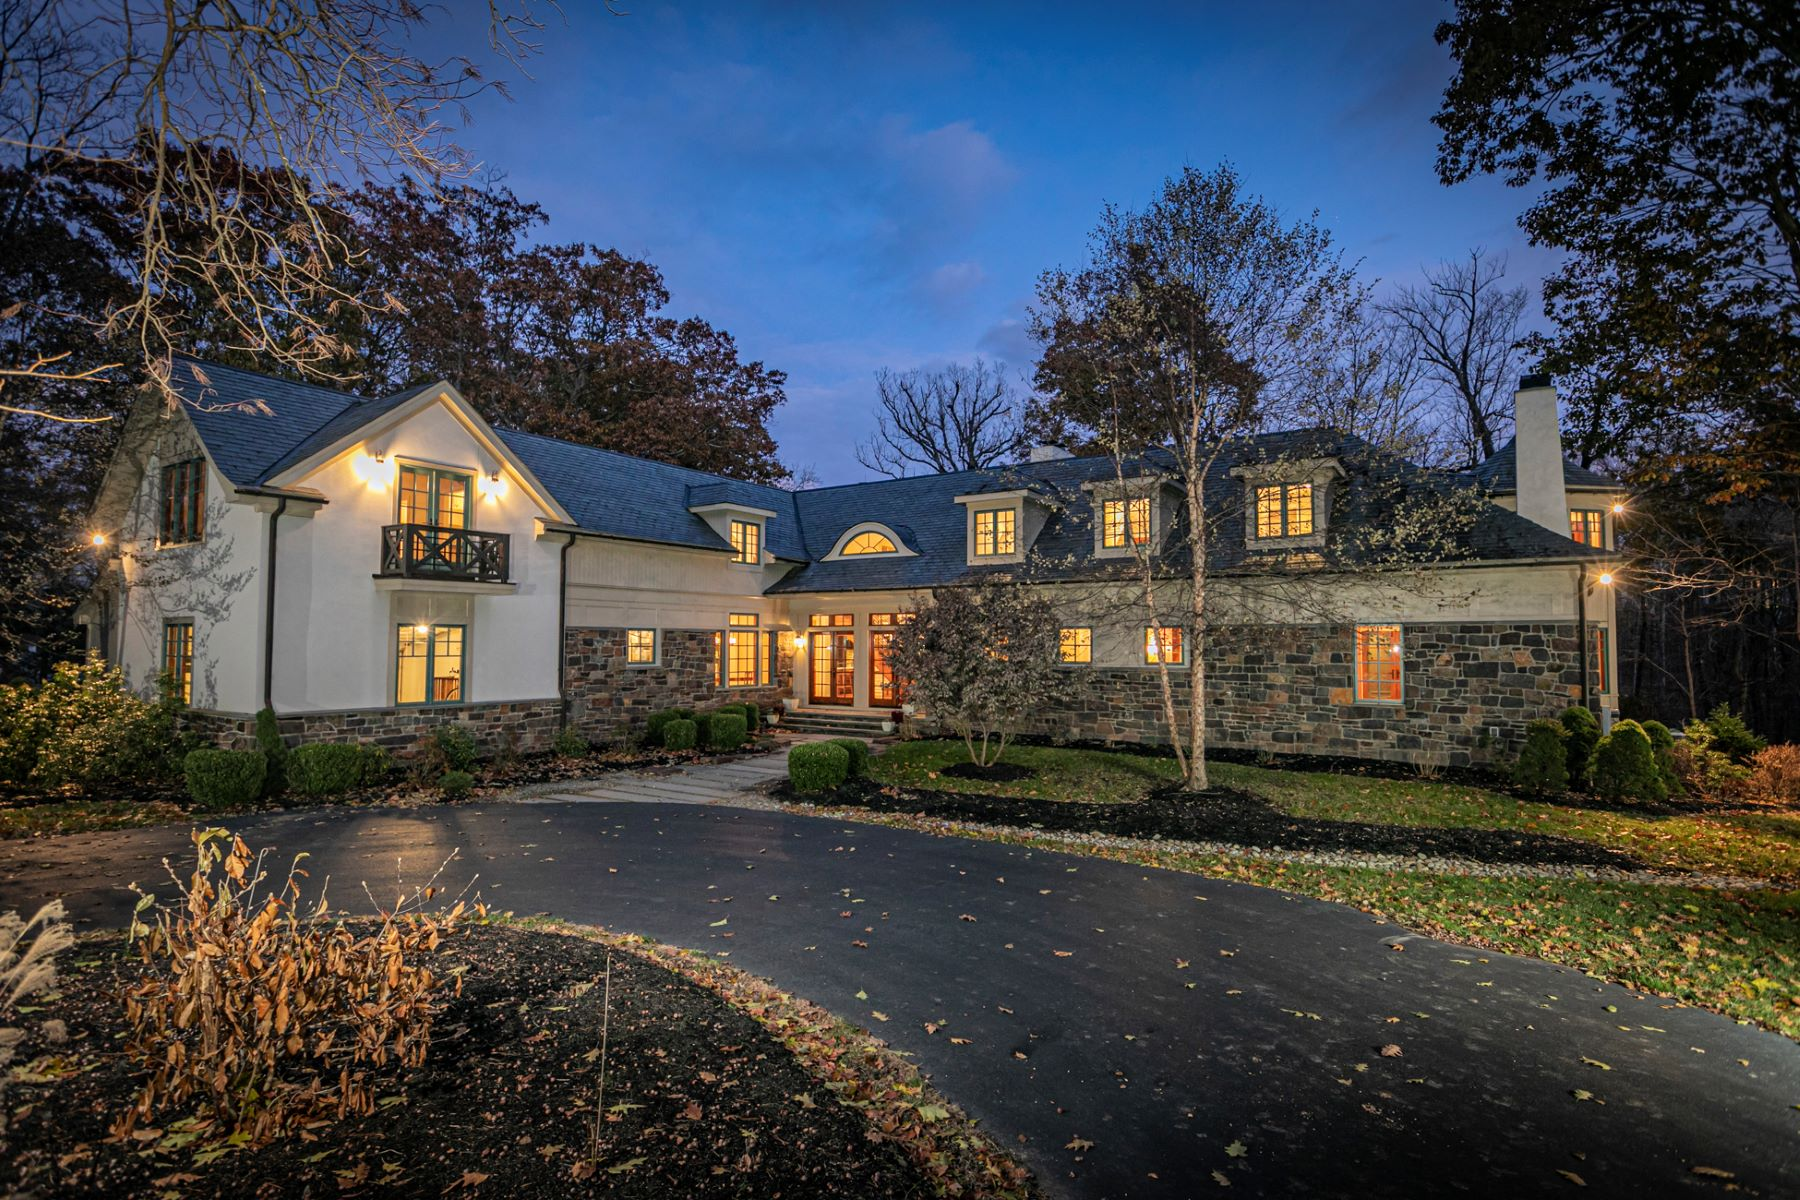 Single Family Homes için Satış at Luxury Home Perched Above Stoney Brook 37 Stoney Brook Lane, Princeton, New Jersey 08540 Amerika Birleşik Devletleri